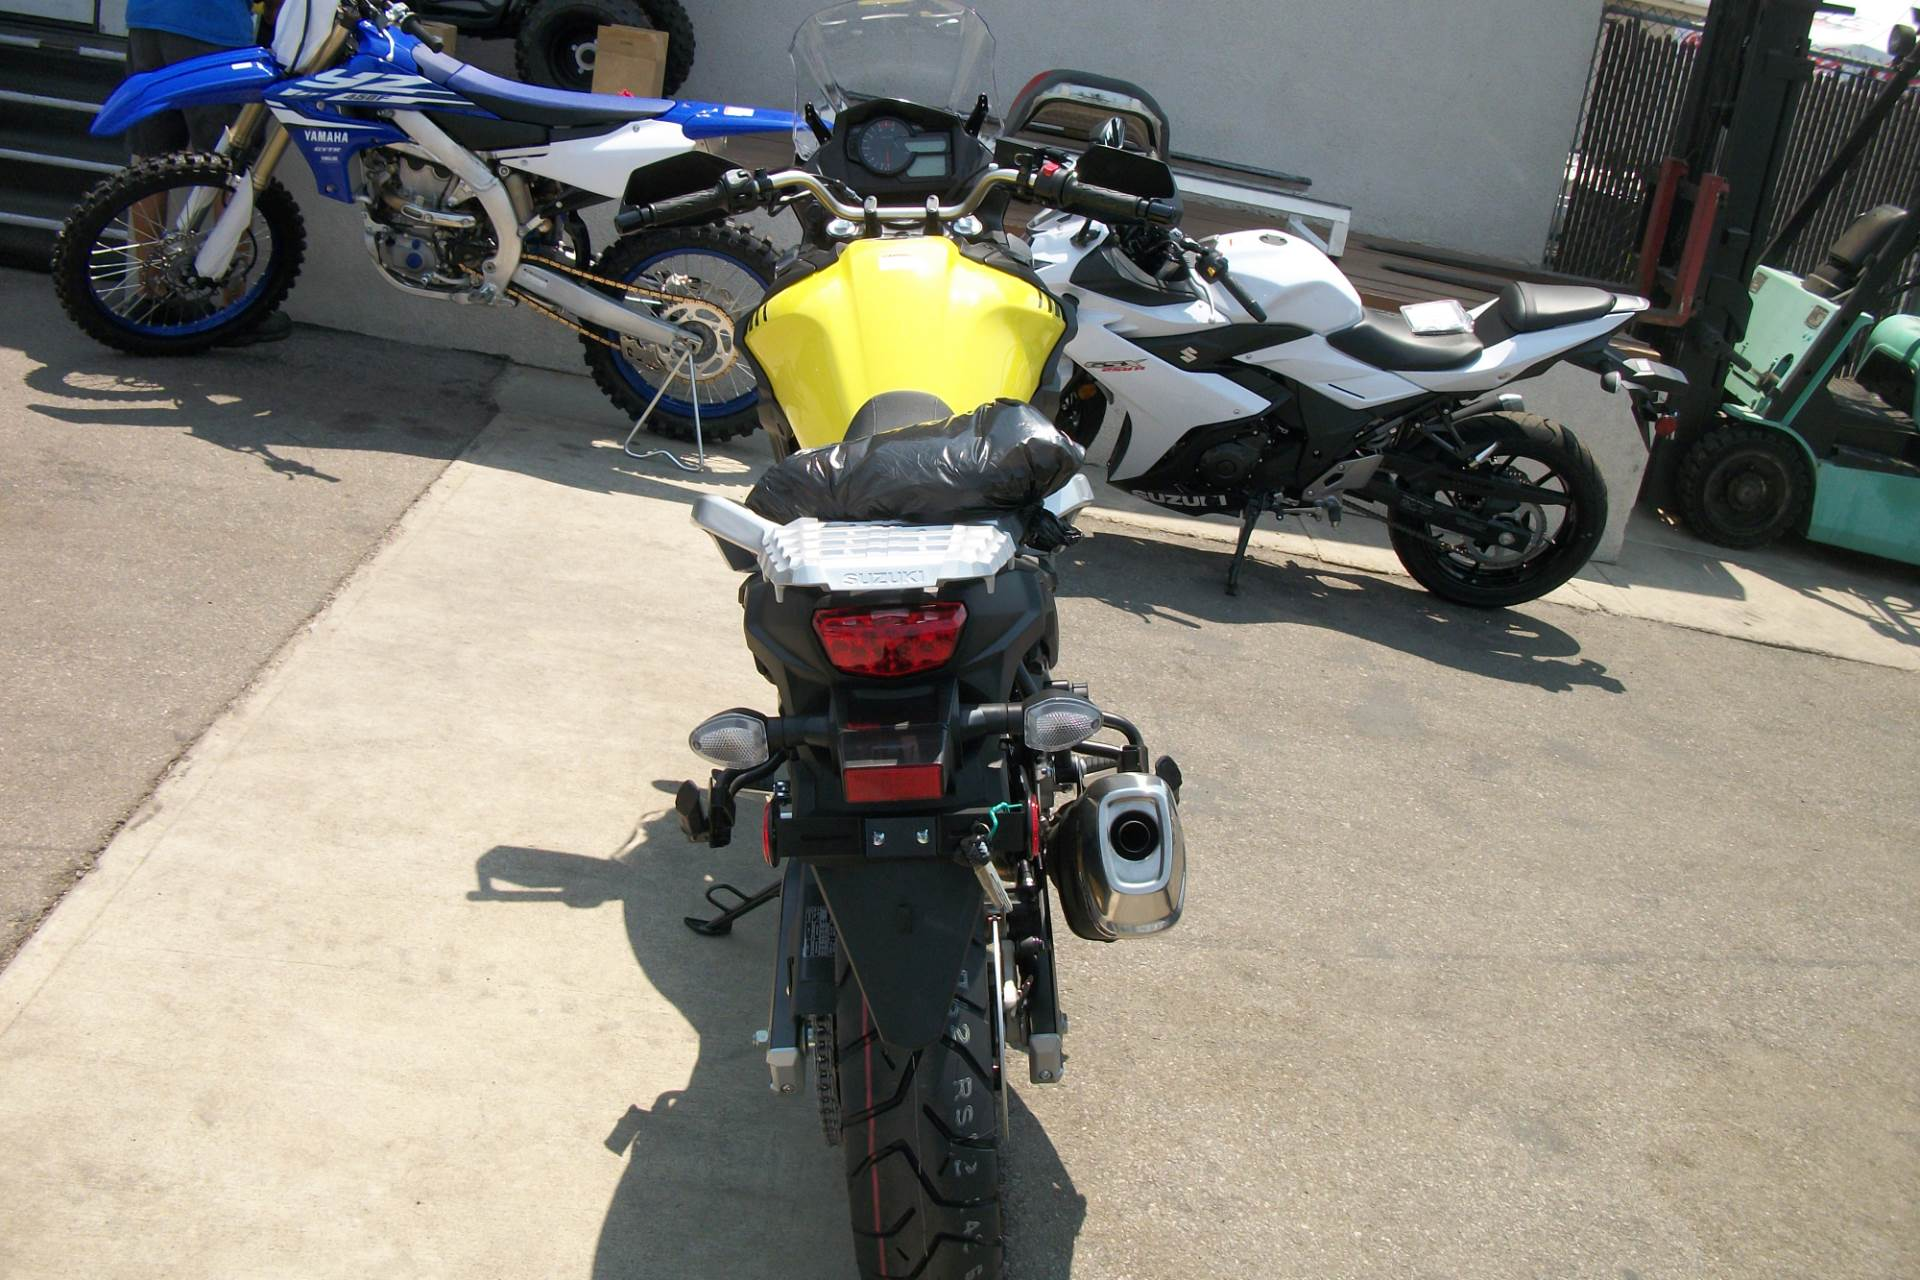 2018 Suzuki V-Strom 650XT in Simi Valley, California